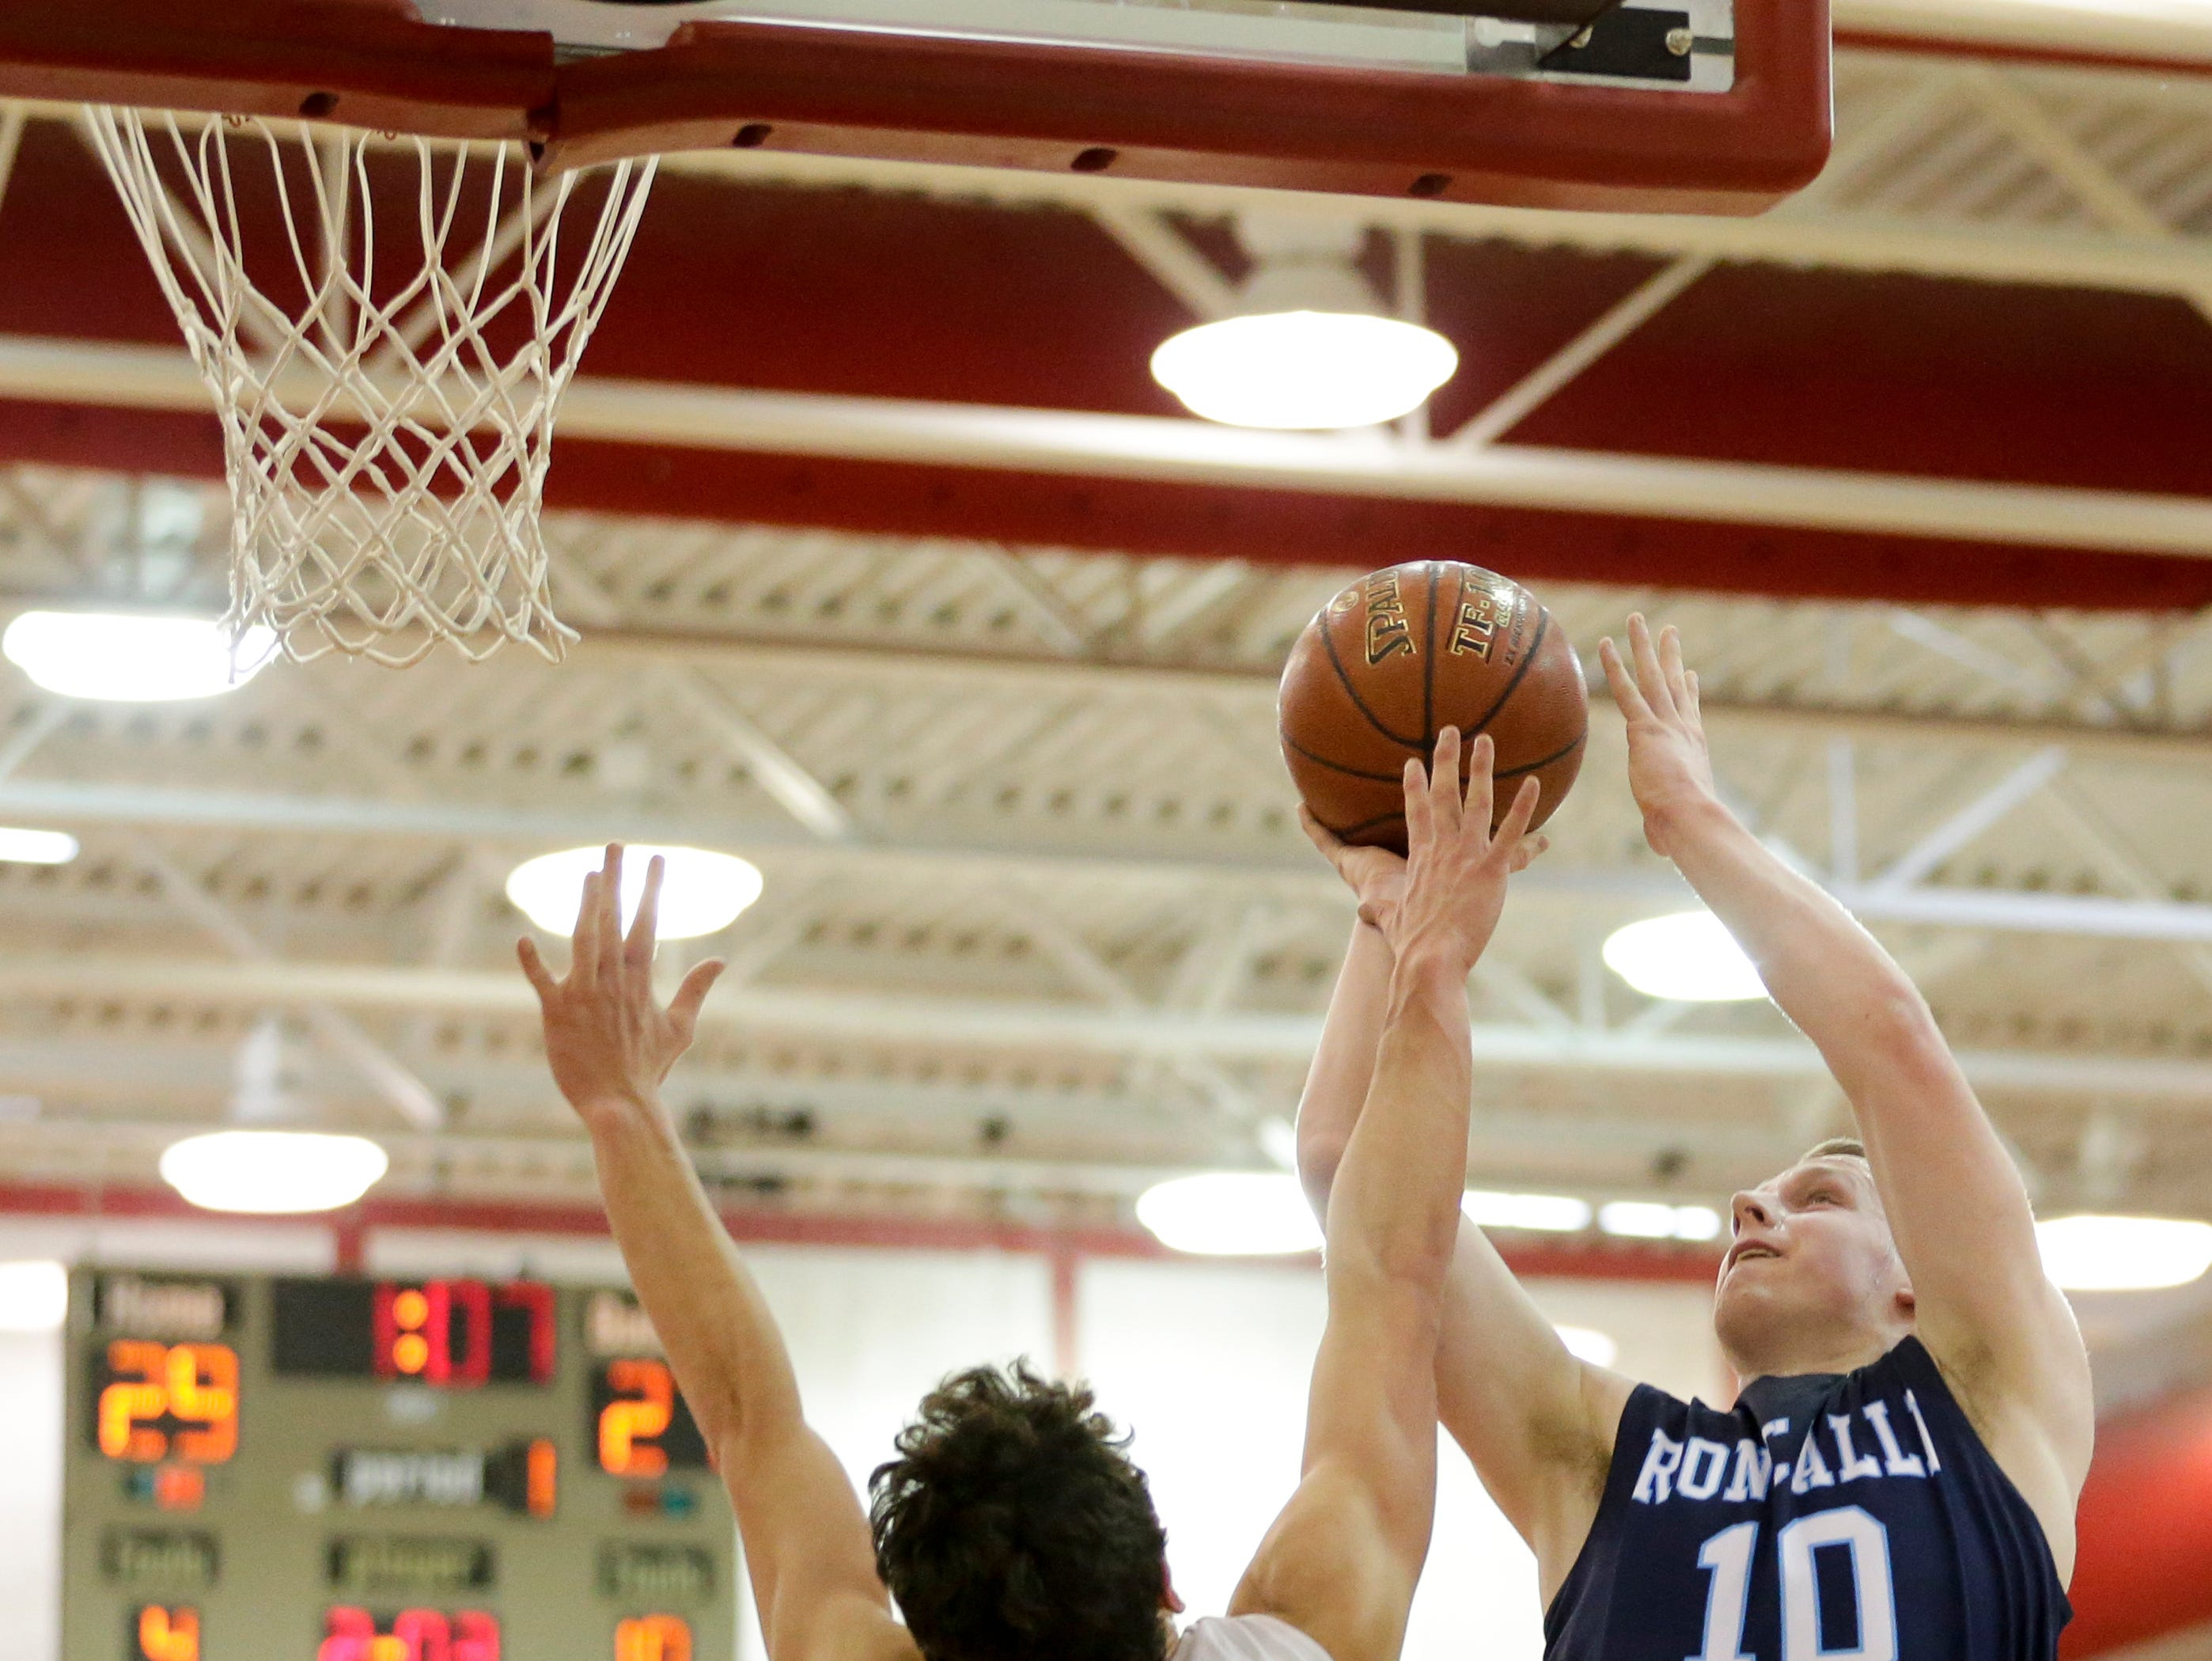 Roncalli's Matthew La Vene puts up a shot over Valders' Reese Brown during an Eastern Wisconsin Conference game at Valders High School Thursday, January 3, 2019, in Valders, Wis. Joshua Clark/USA TODAY NETWORK-Wisconsin